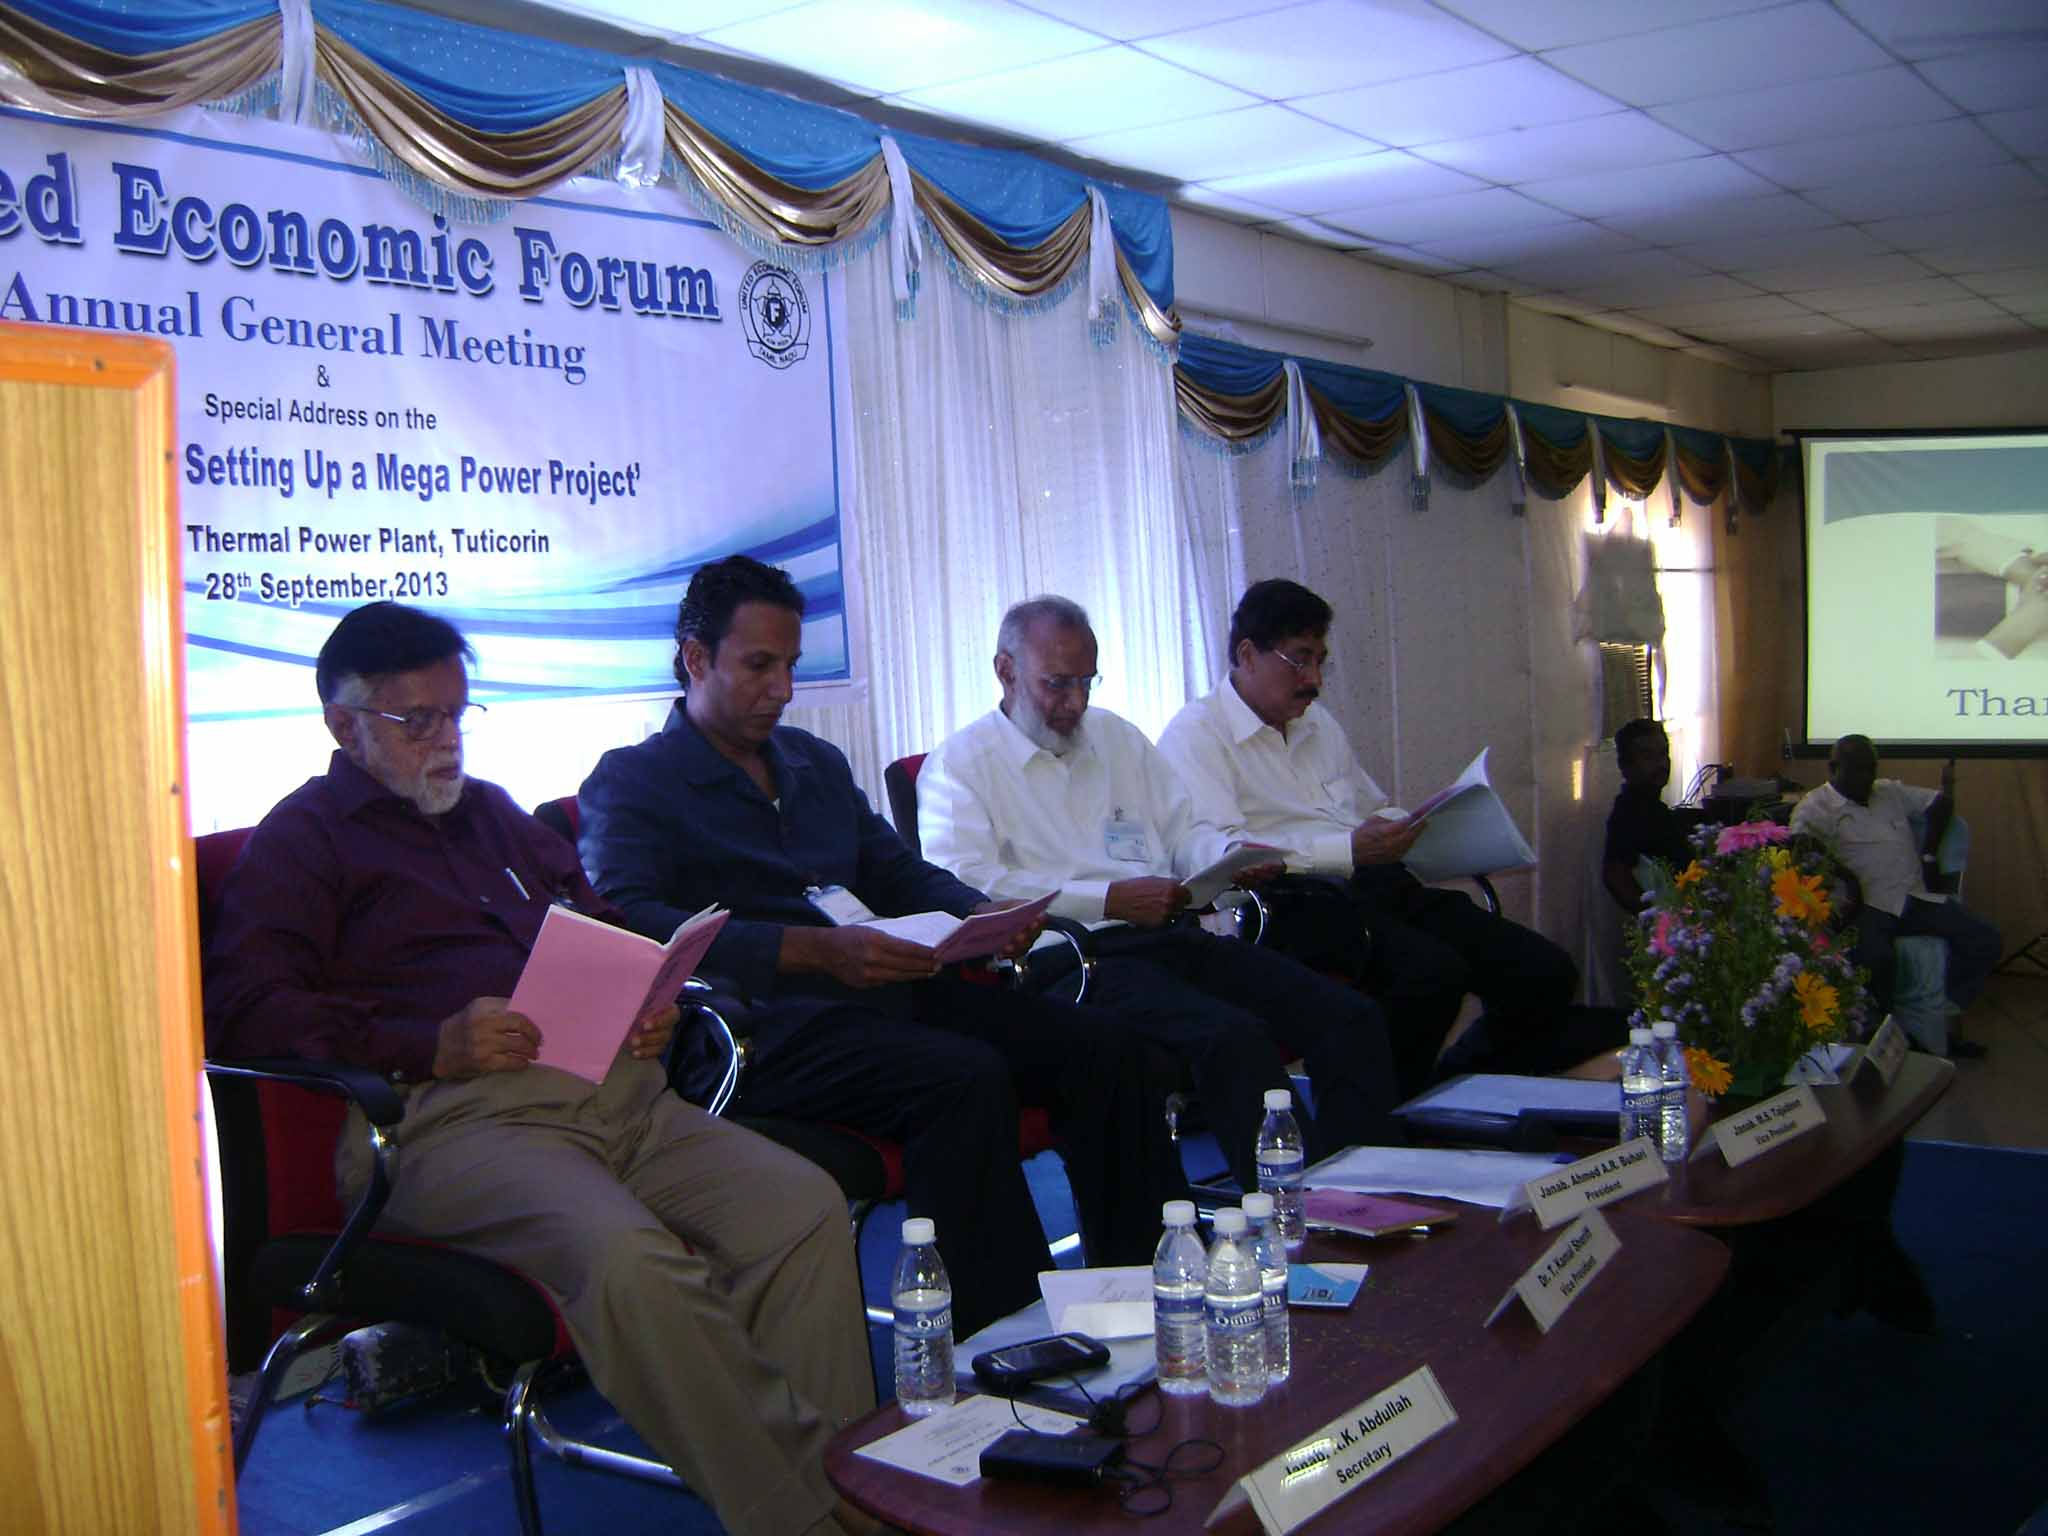 Anuual General Body Meeting of the United Economic Forum held on 28th September 2013 at Mutiara Thermal Power Plant, Melamarudur Village, Tuticorin, Tamil Nadu.